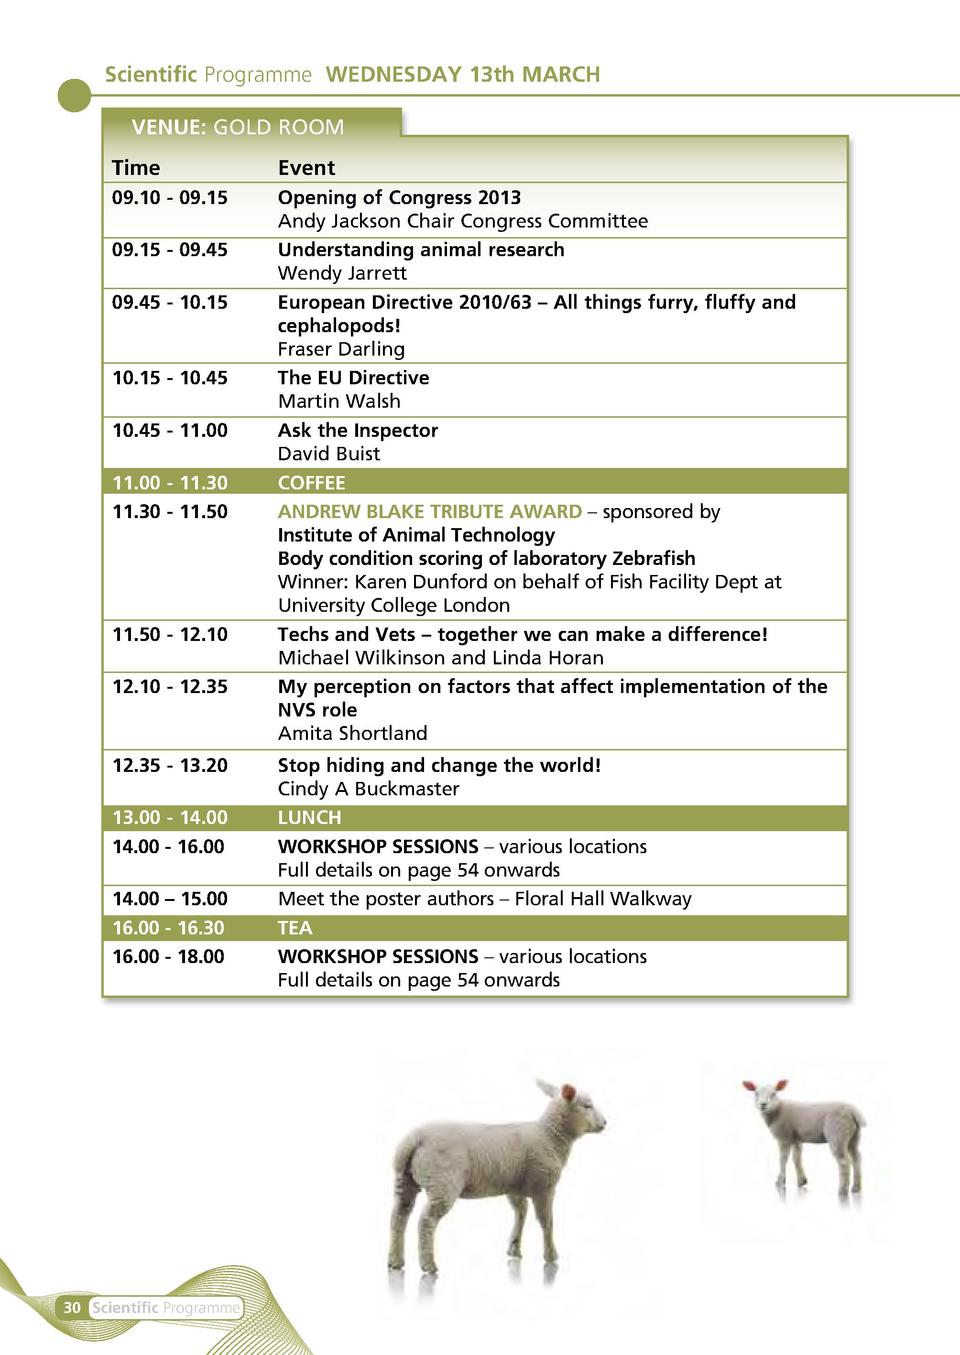 Scientific Programme WEDNESDAY 13th MARCH VENUE  GOLD ROOM Time Event 09.10 - 09.15  Opening of Congress 2013   Andy Jacks...